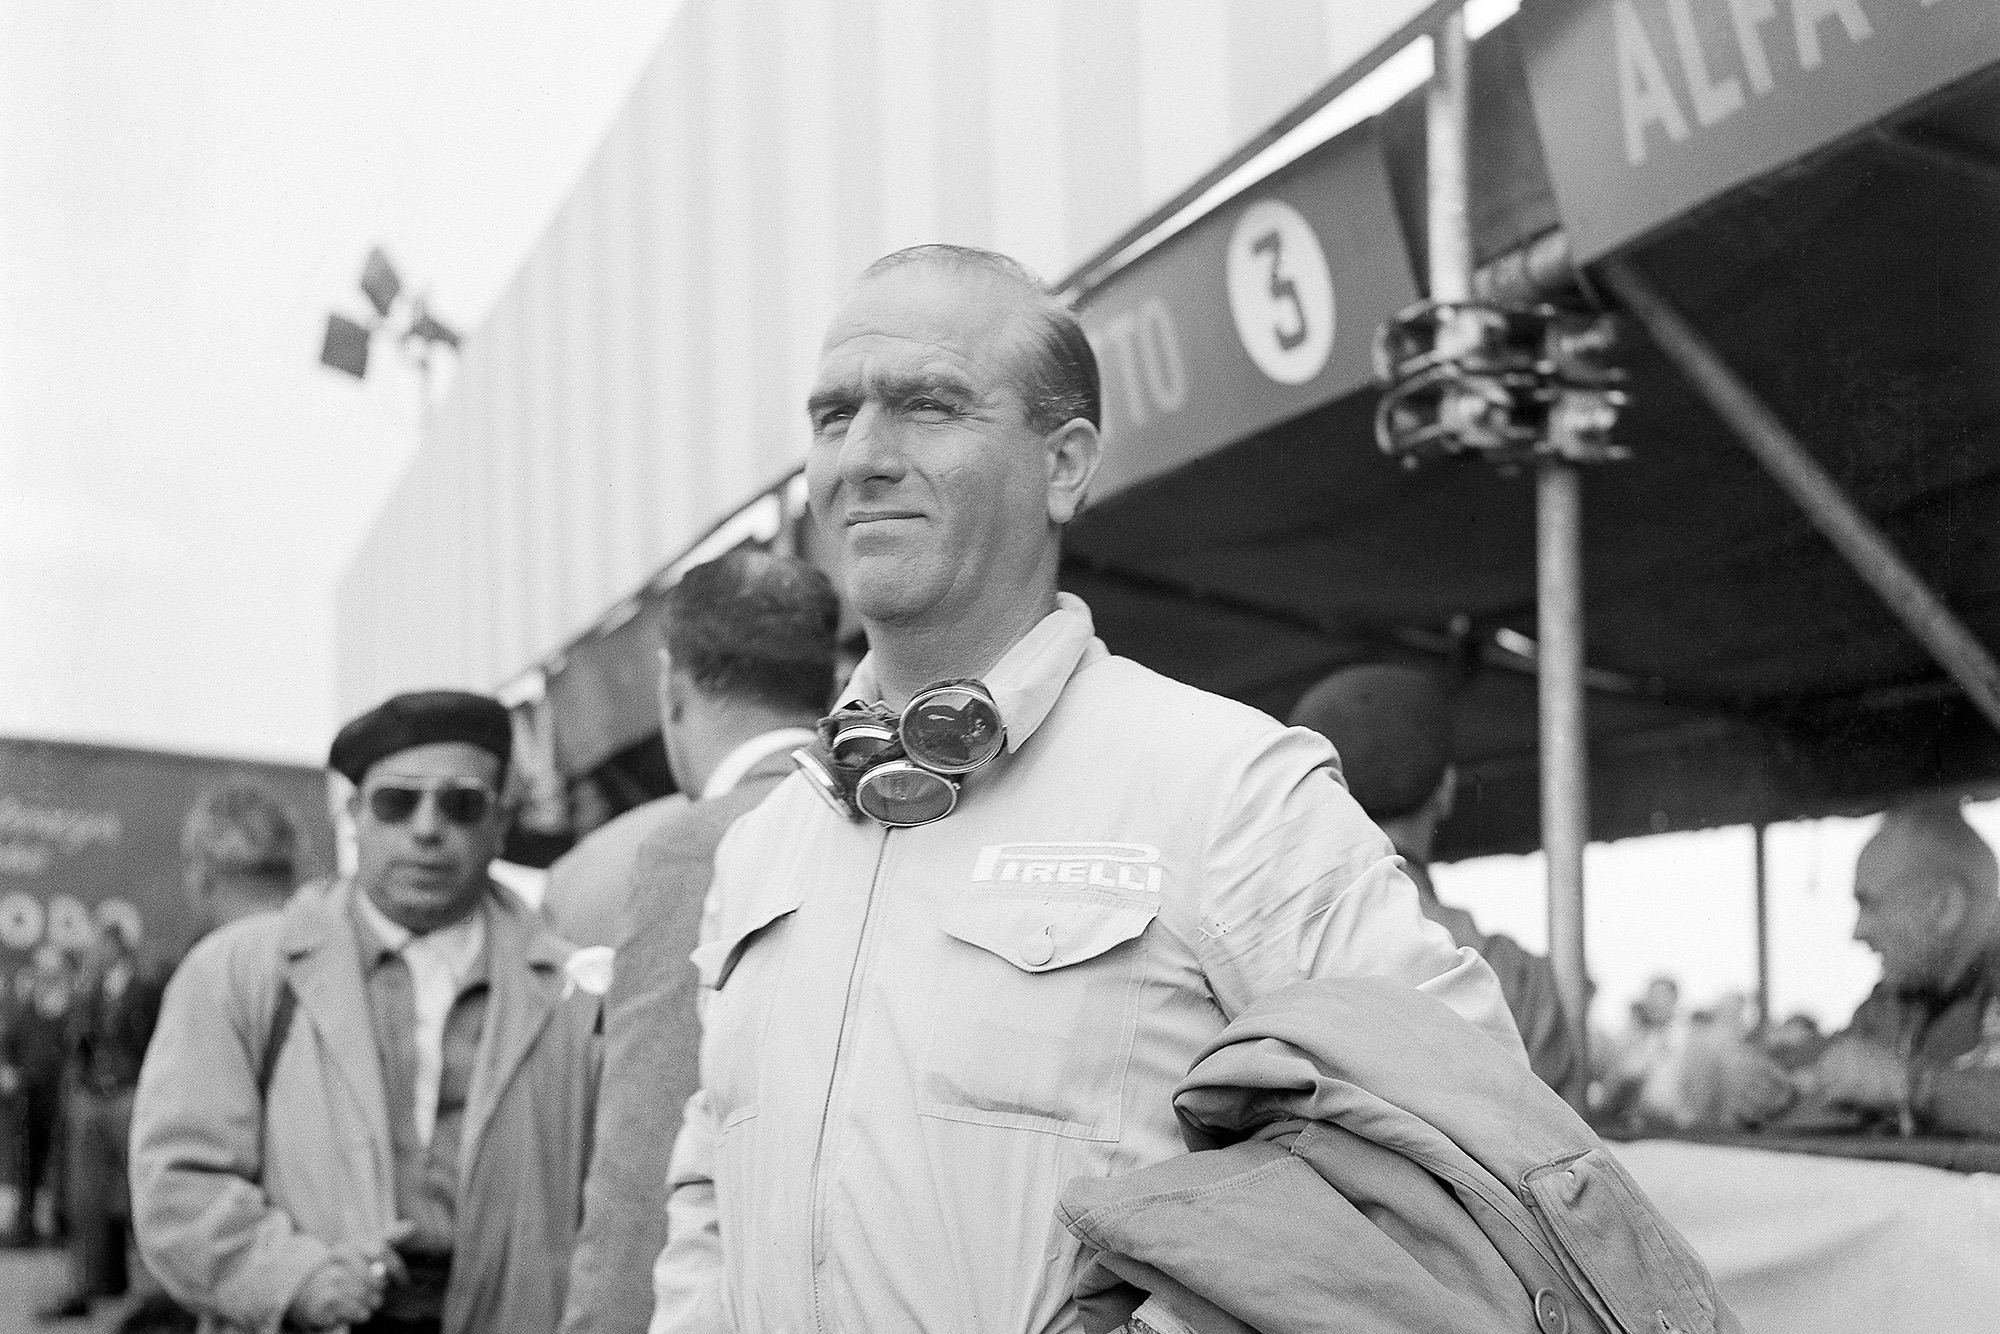 Giuseppe Farina at Silverstone during the 1950 British Grand Prix weekend